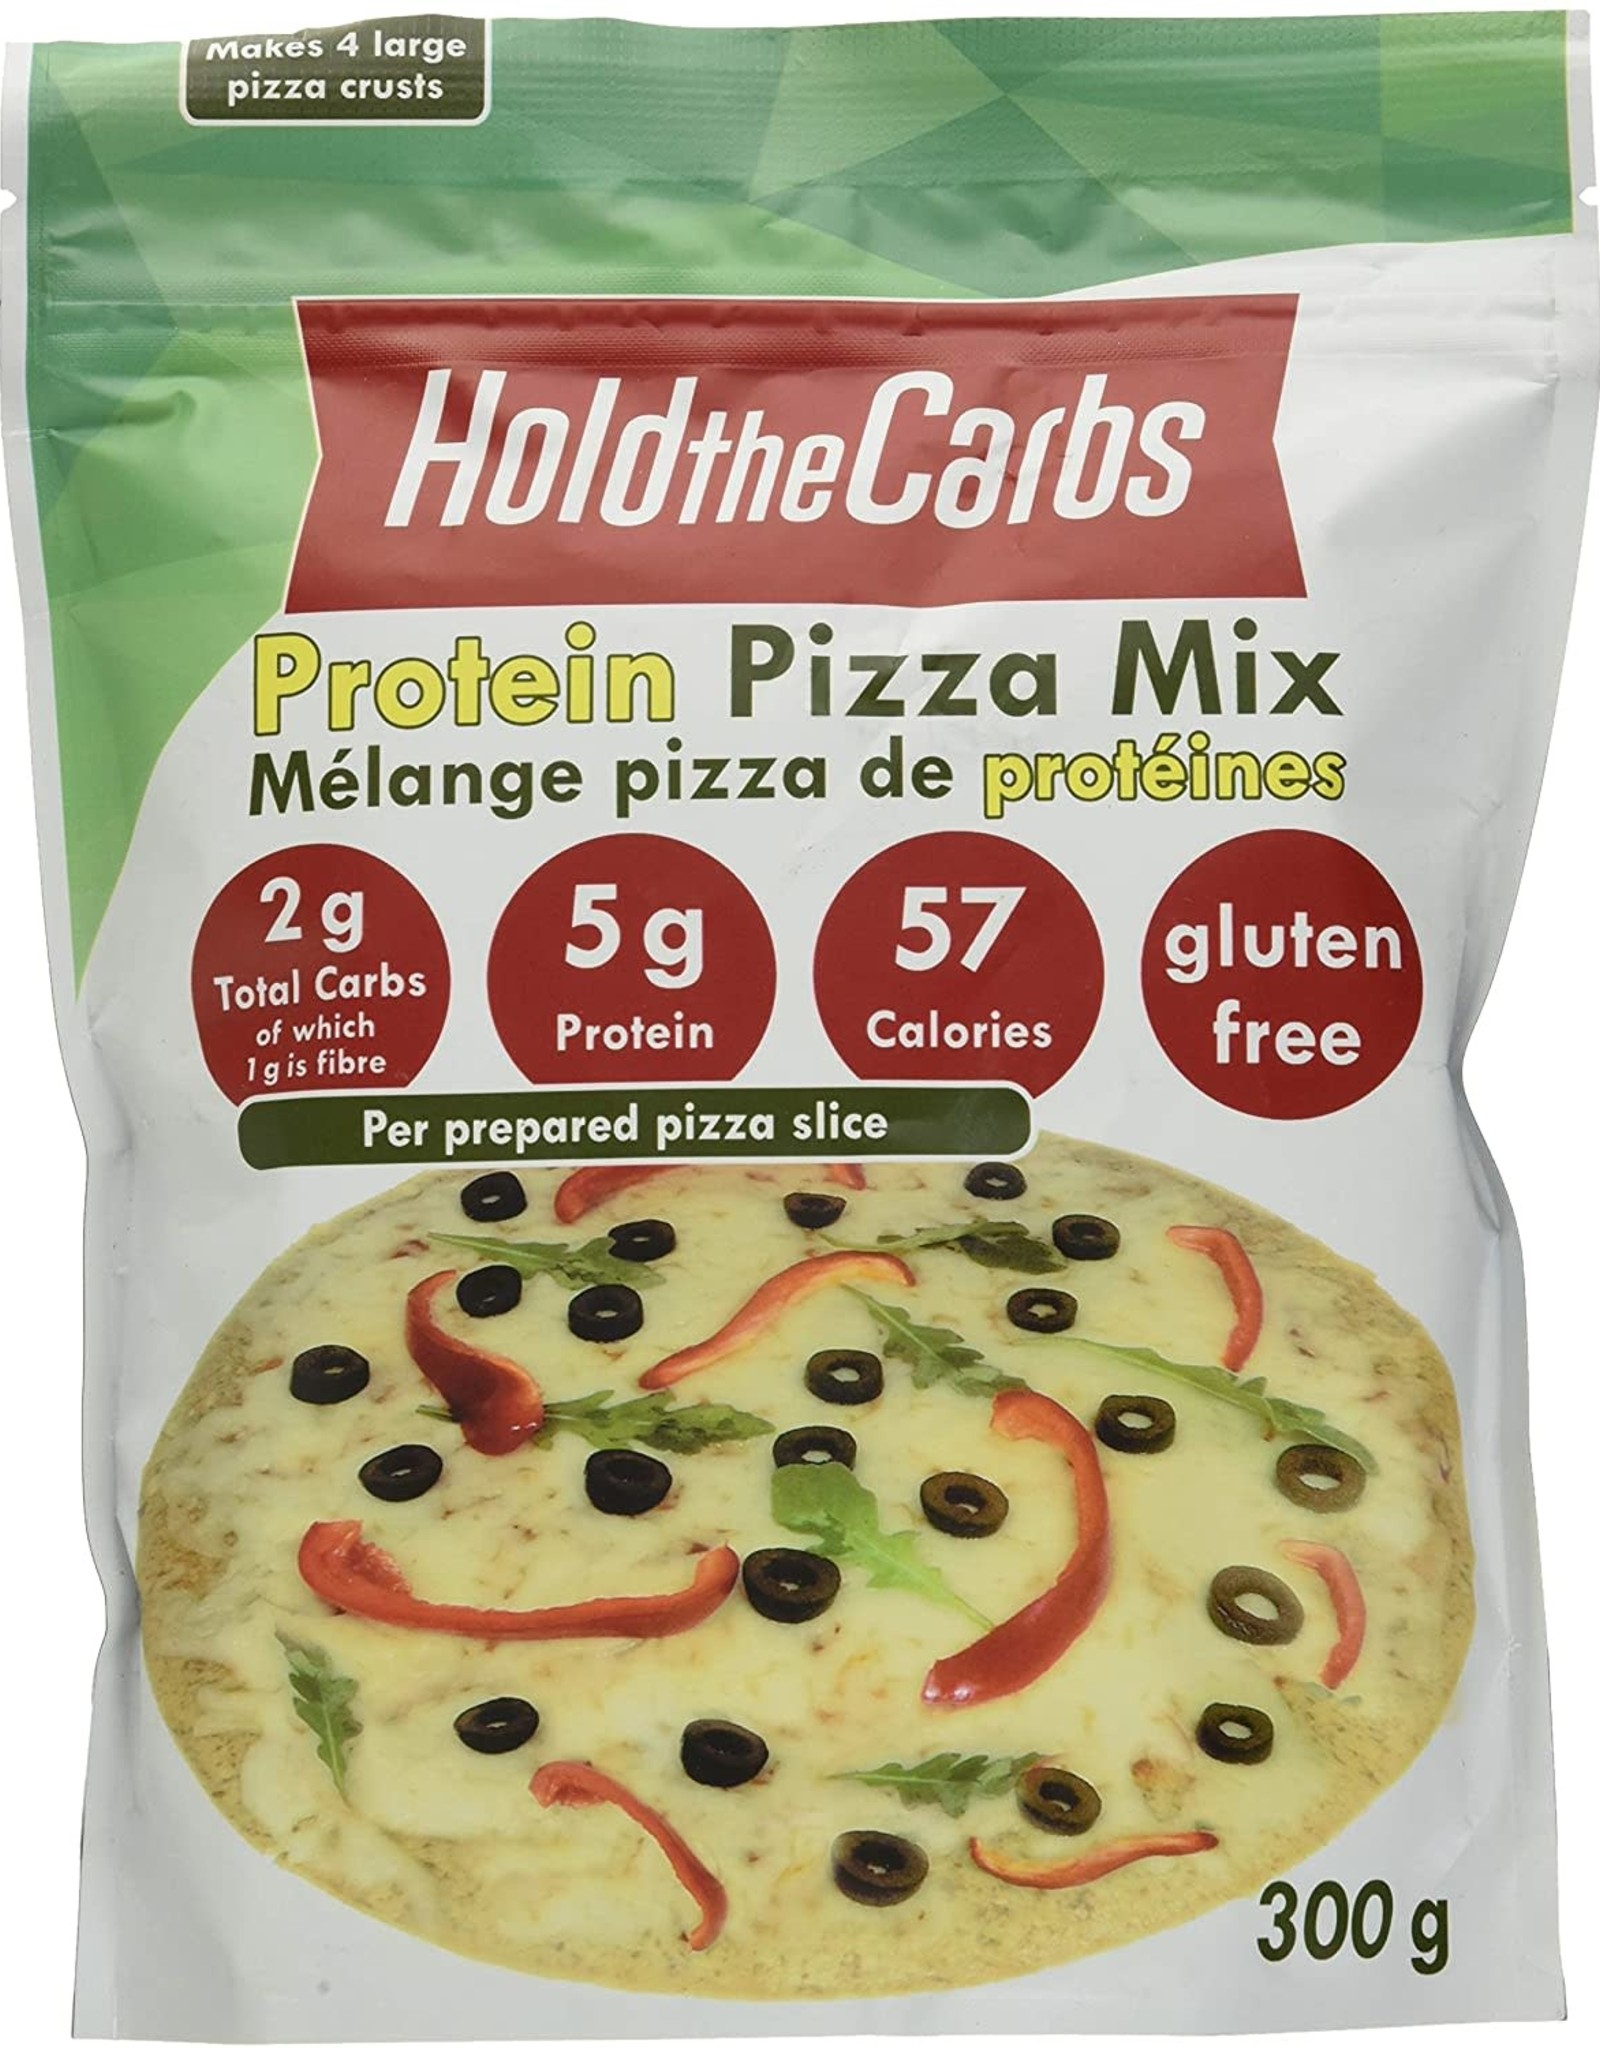 Hold the Carbs Hold the Carbs - Protein, Pizza Crust Mix (Large)